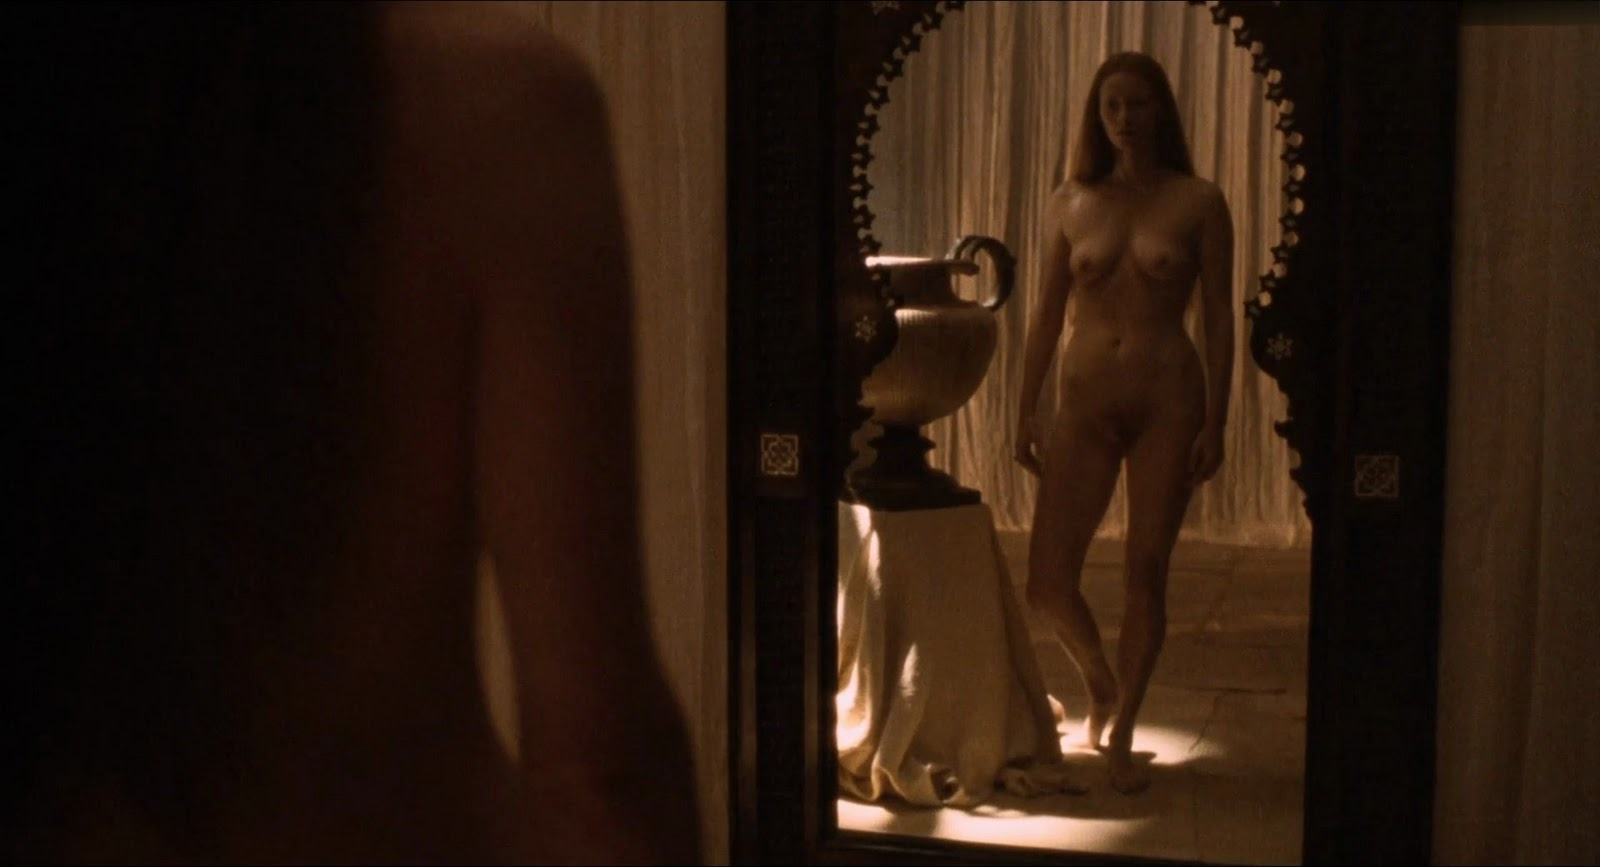 Kathryn hahn india menuez in i love dick s01 - 1 part 4